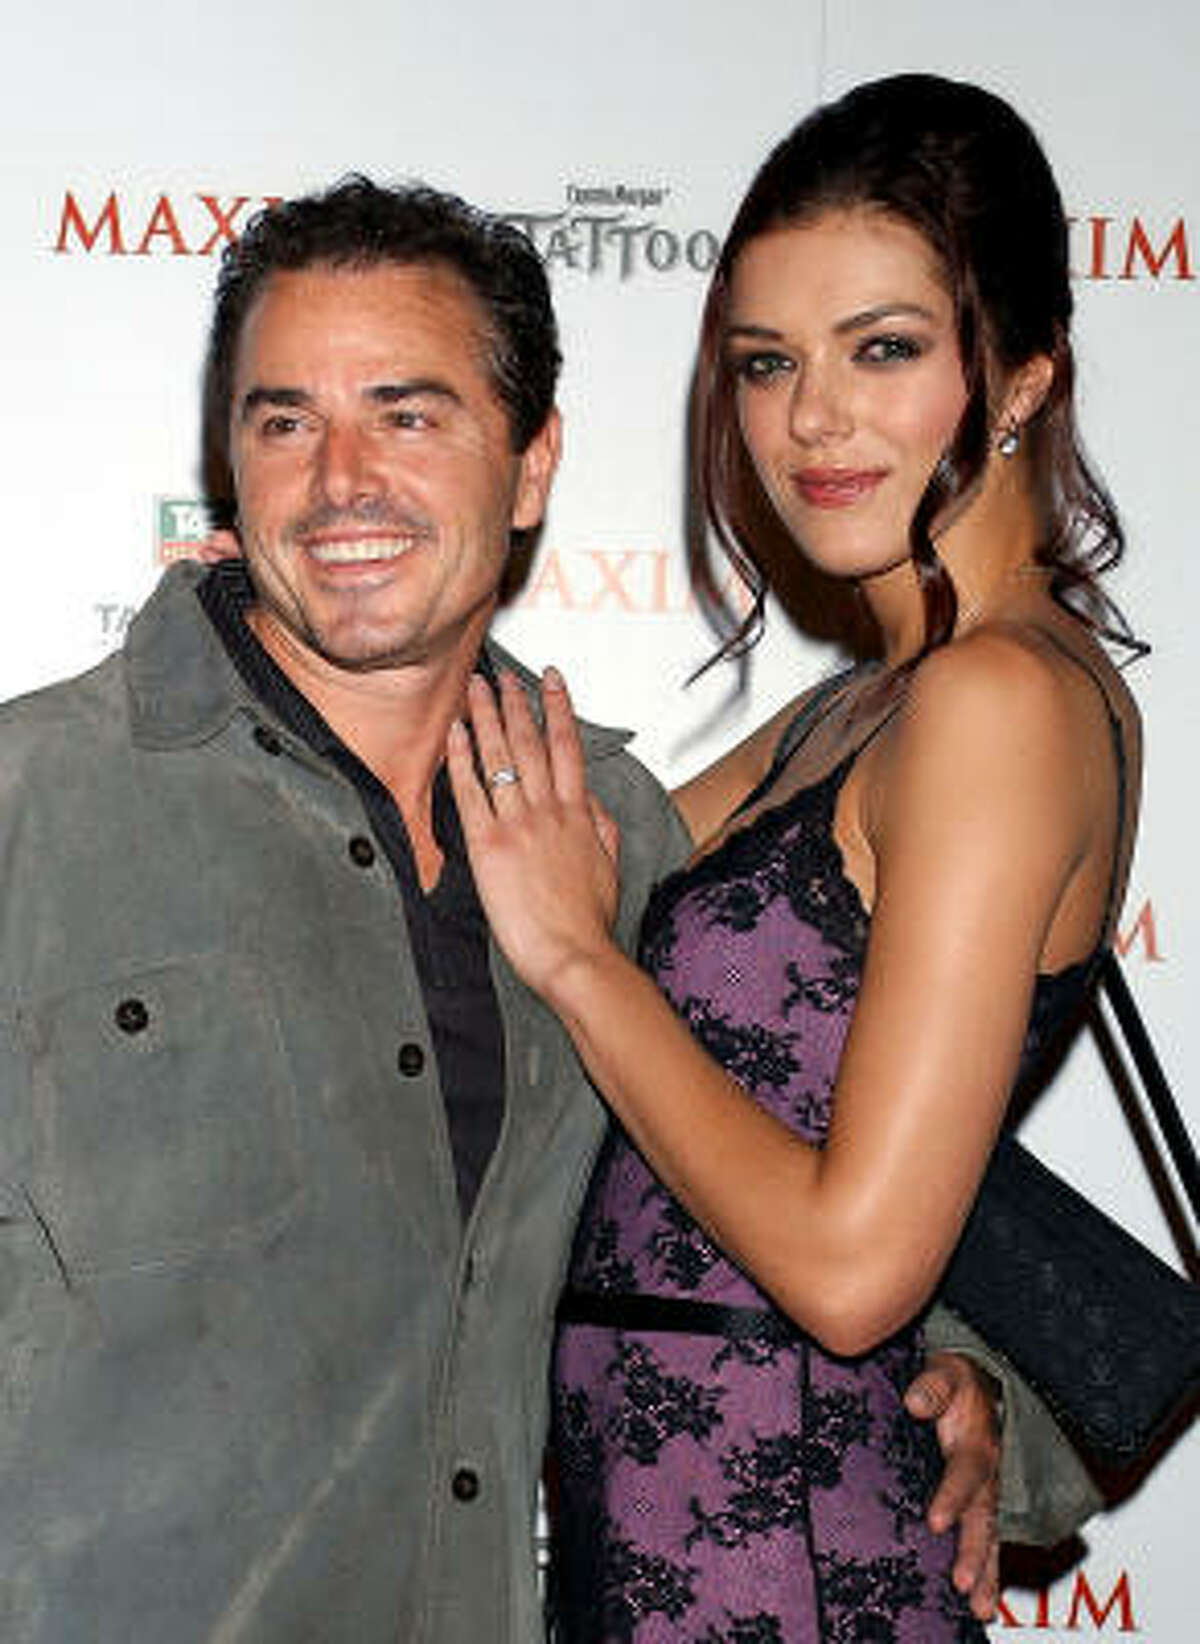 Adrianne Curry and Christopher Knight , My Fair Brady Win: The couple met while on the reality show Surreal Life and they're still married.